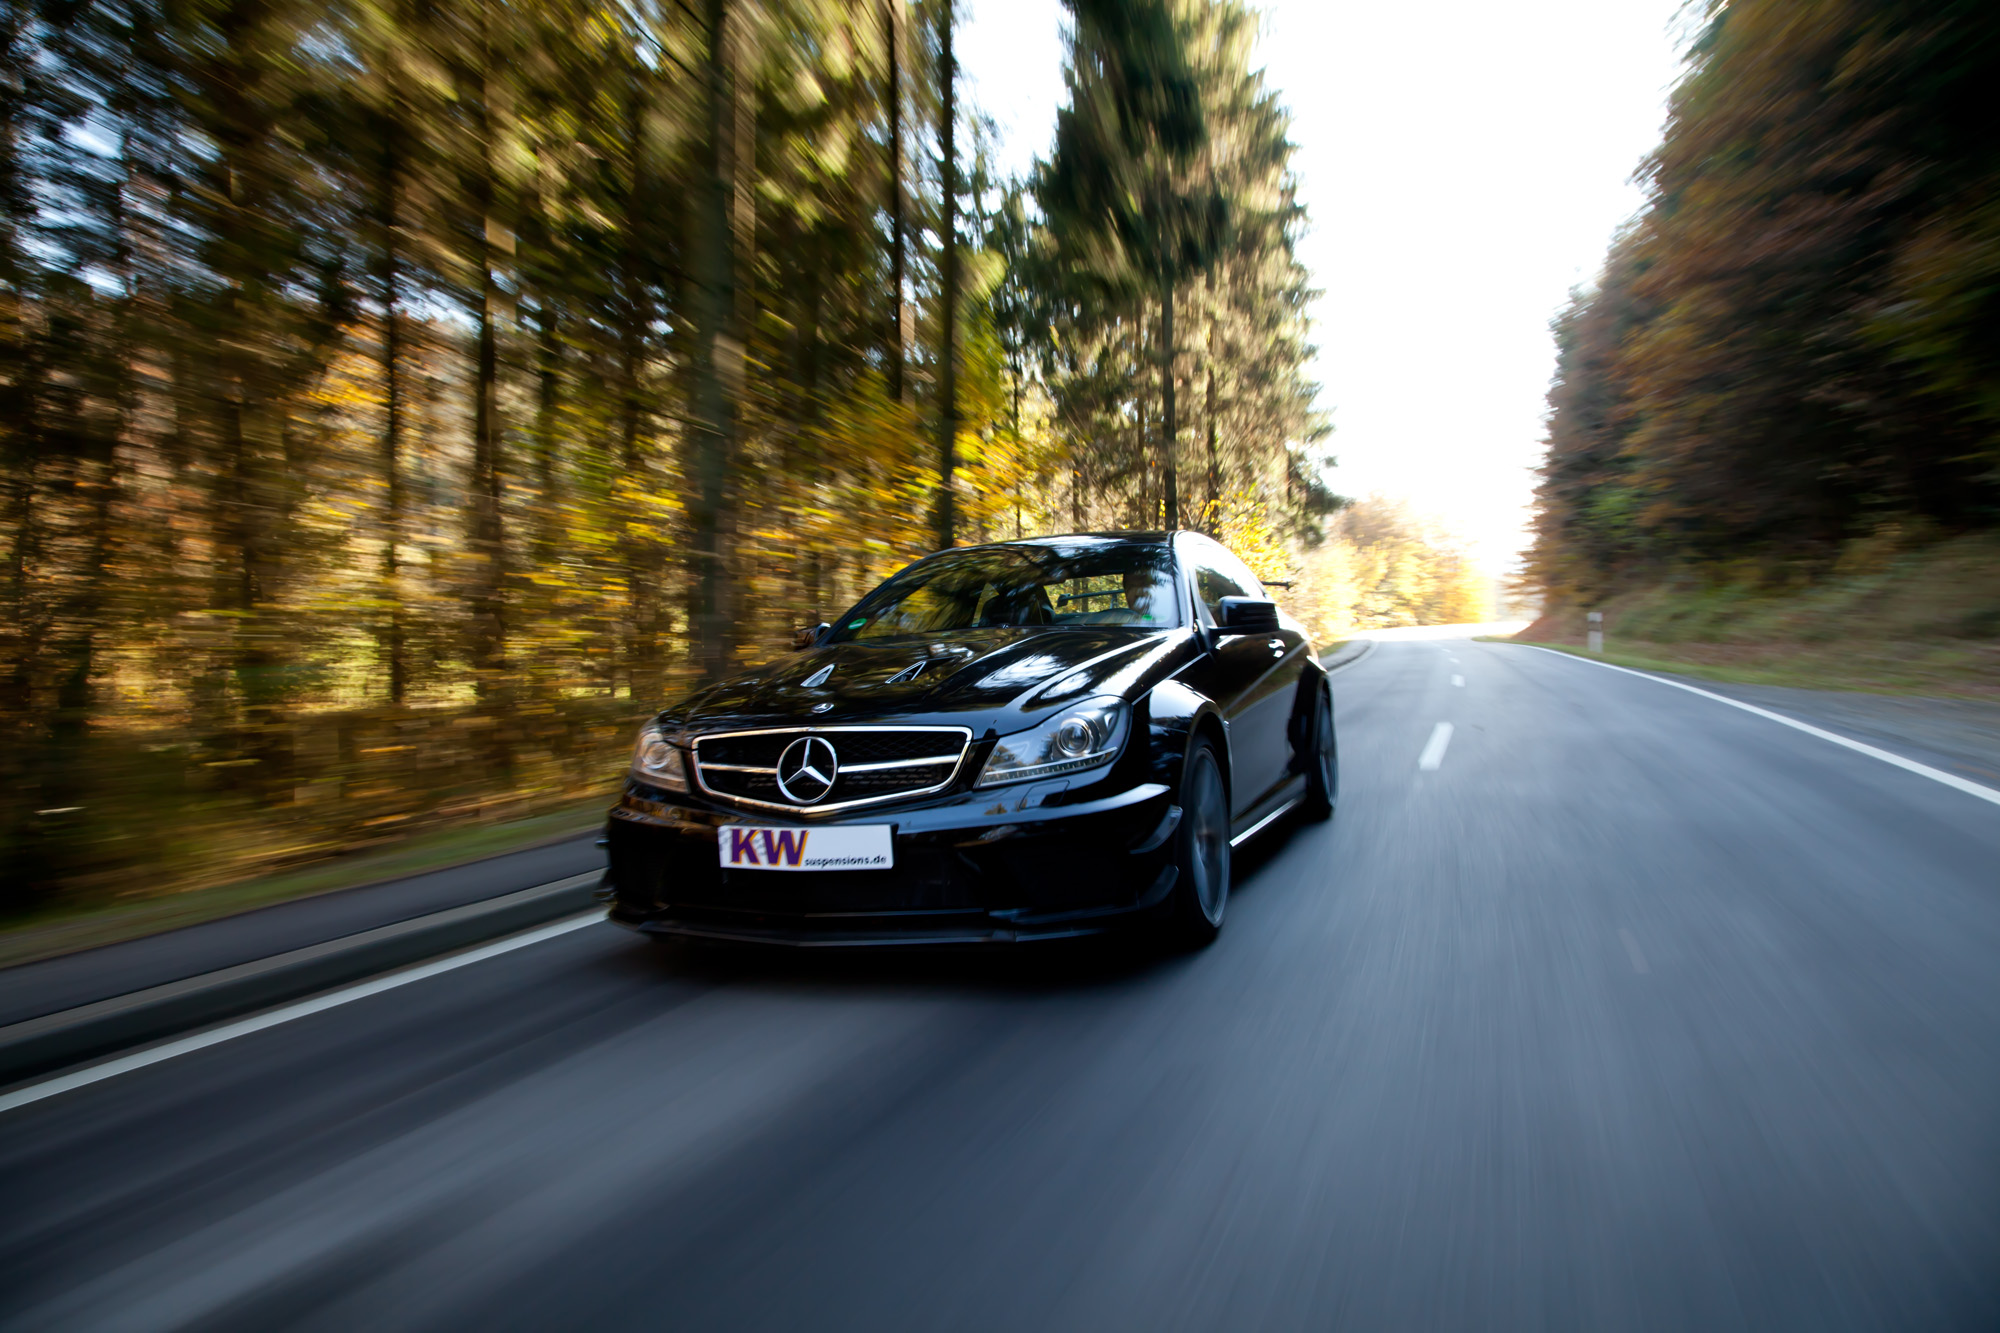 Mercedes C 63 AMG Black Series unterwegs